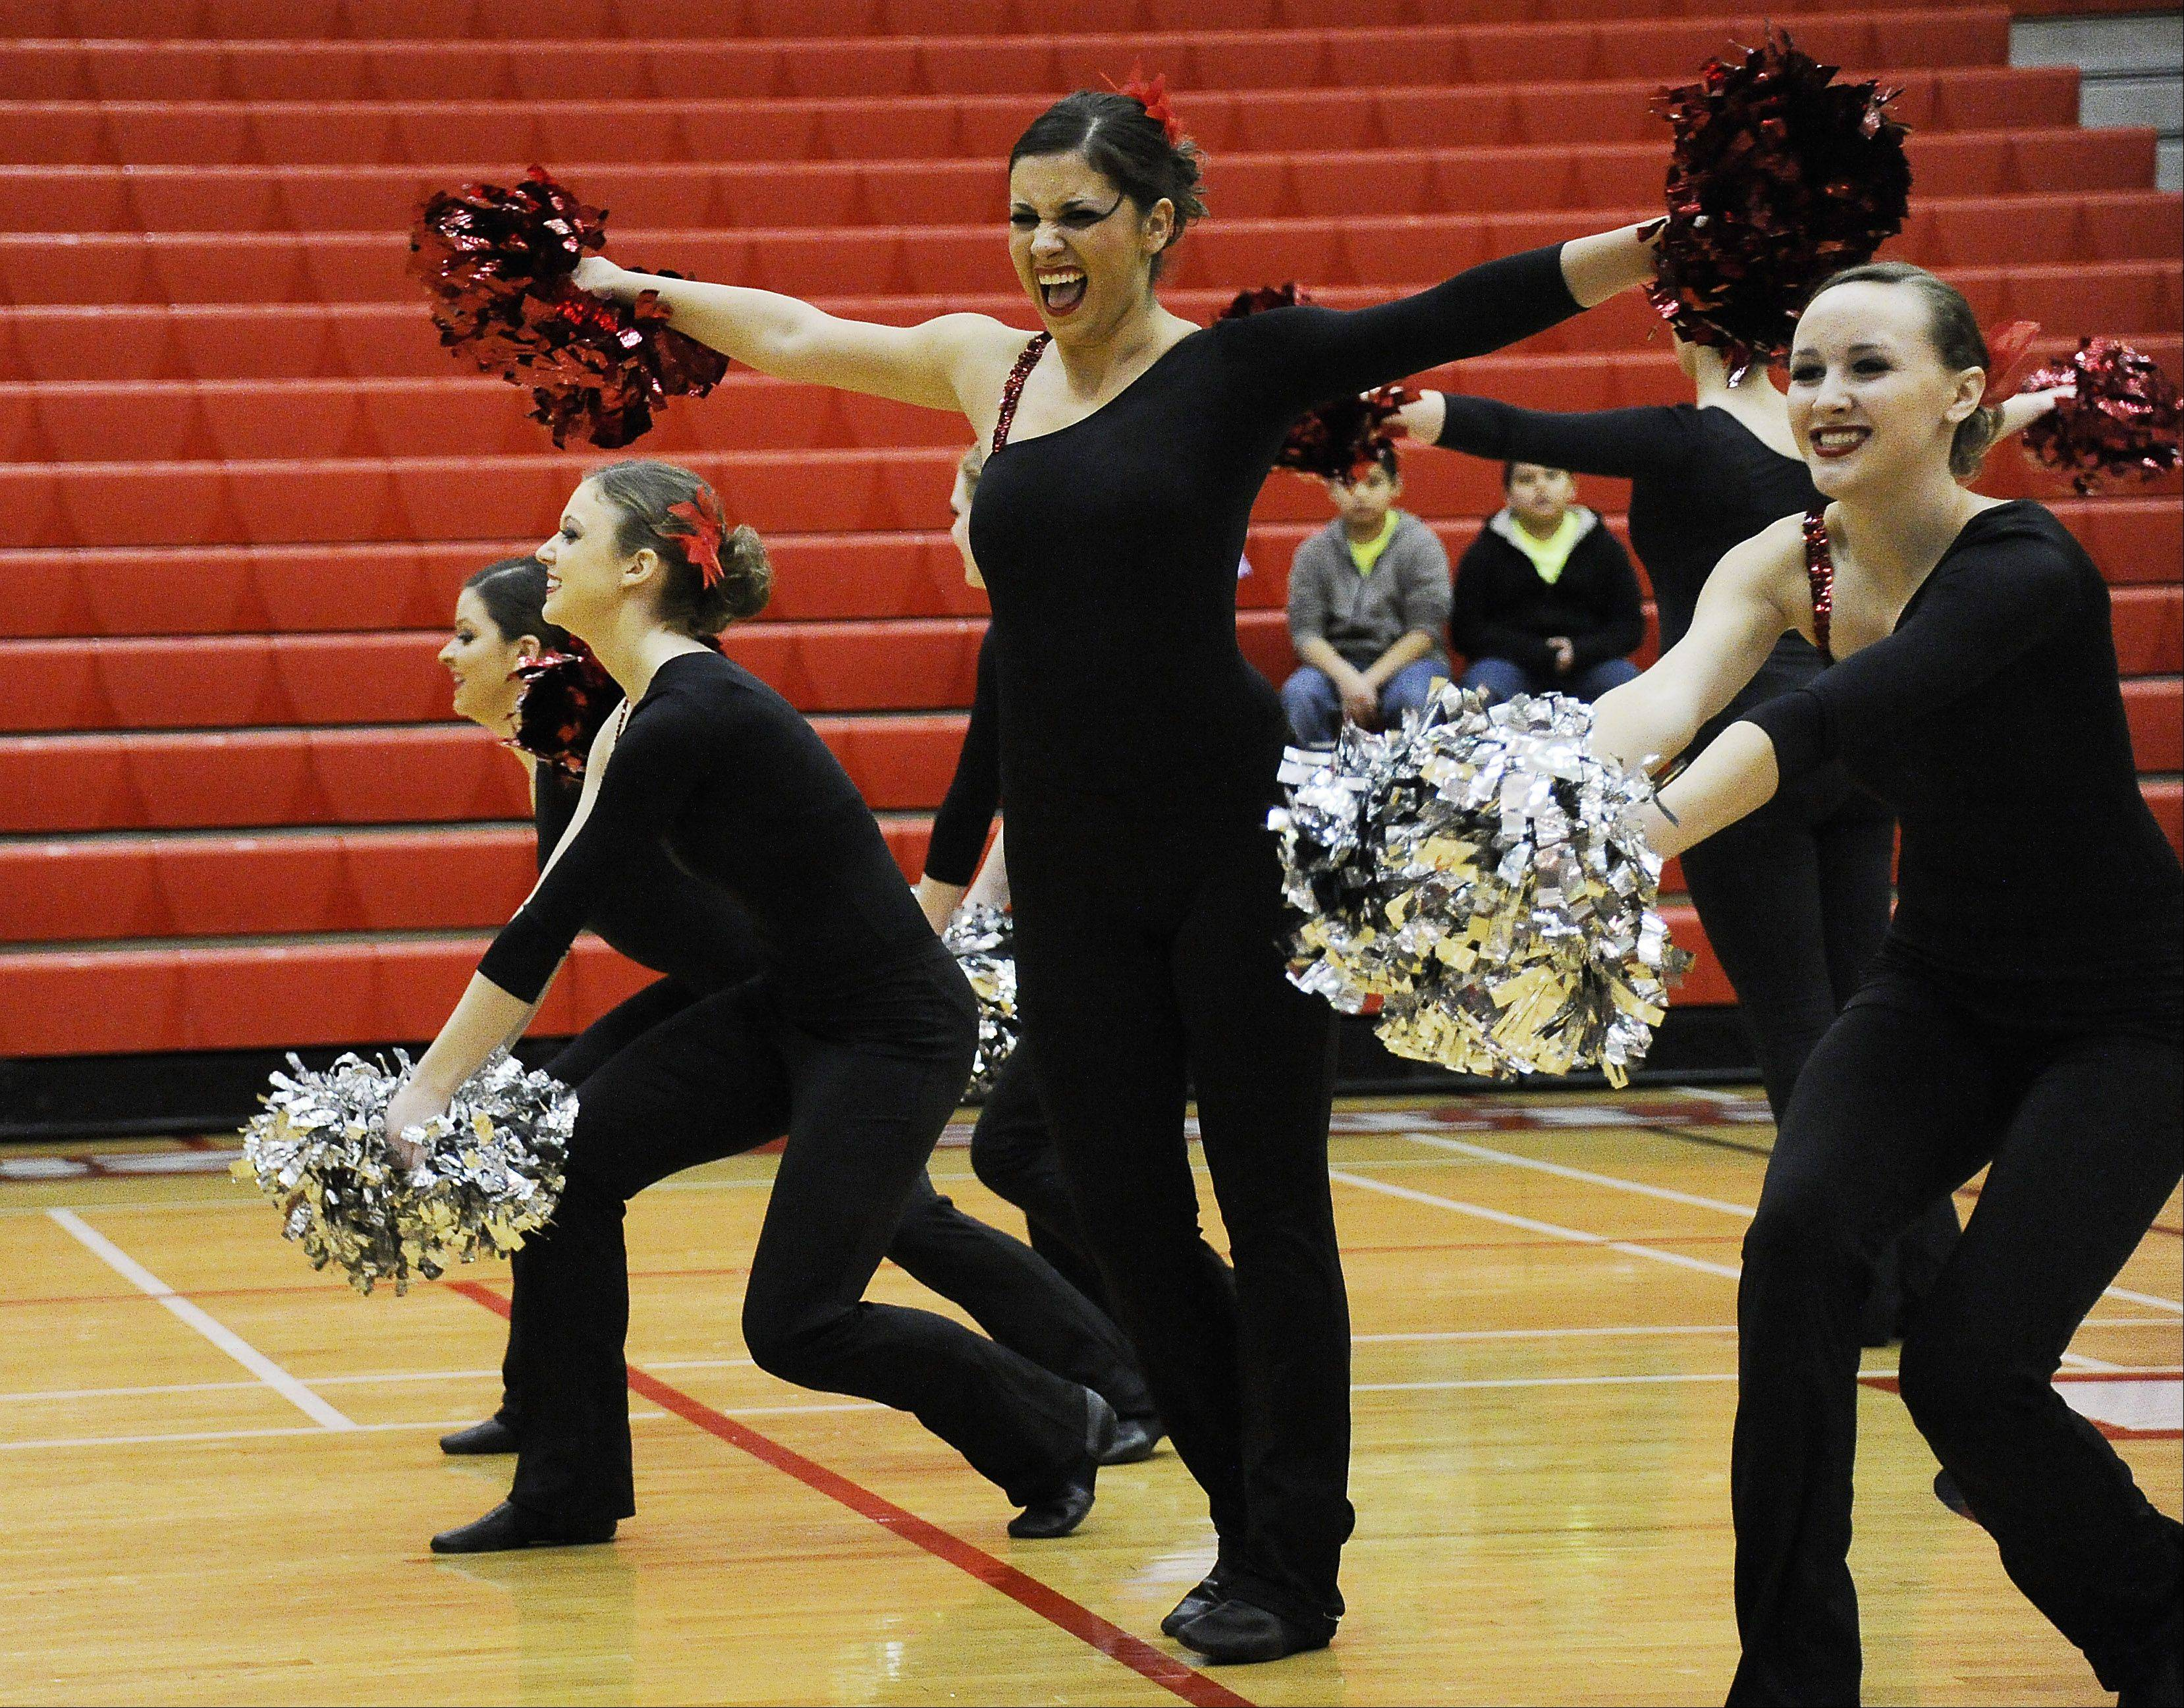 Dancing in the (2A) division are members of the Rolling Meadows High School dance squad with Kaltrina Ajroja leading the way in the 1st annual Sectional Competition at Palatine High School on Saturday.